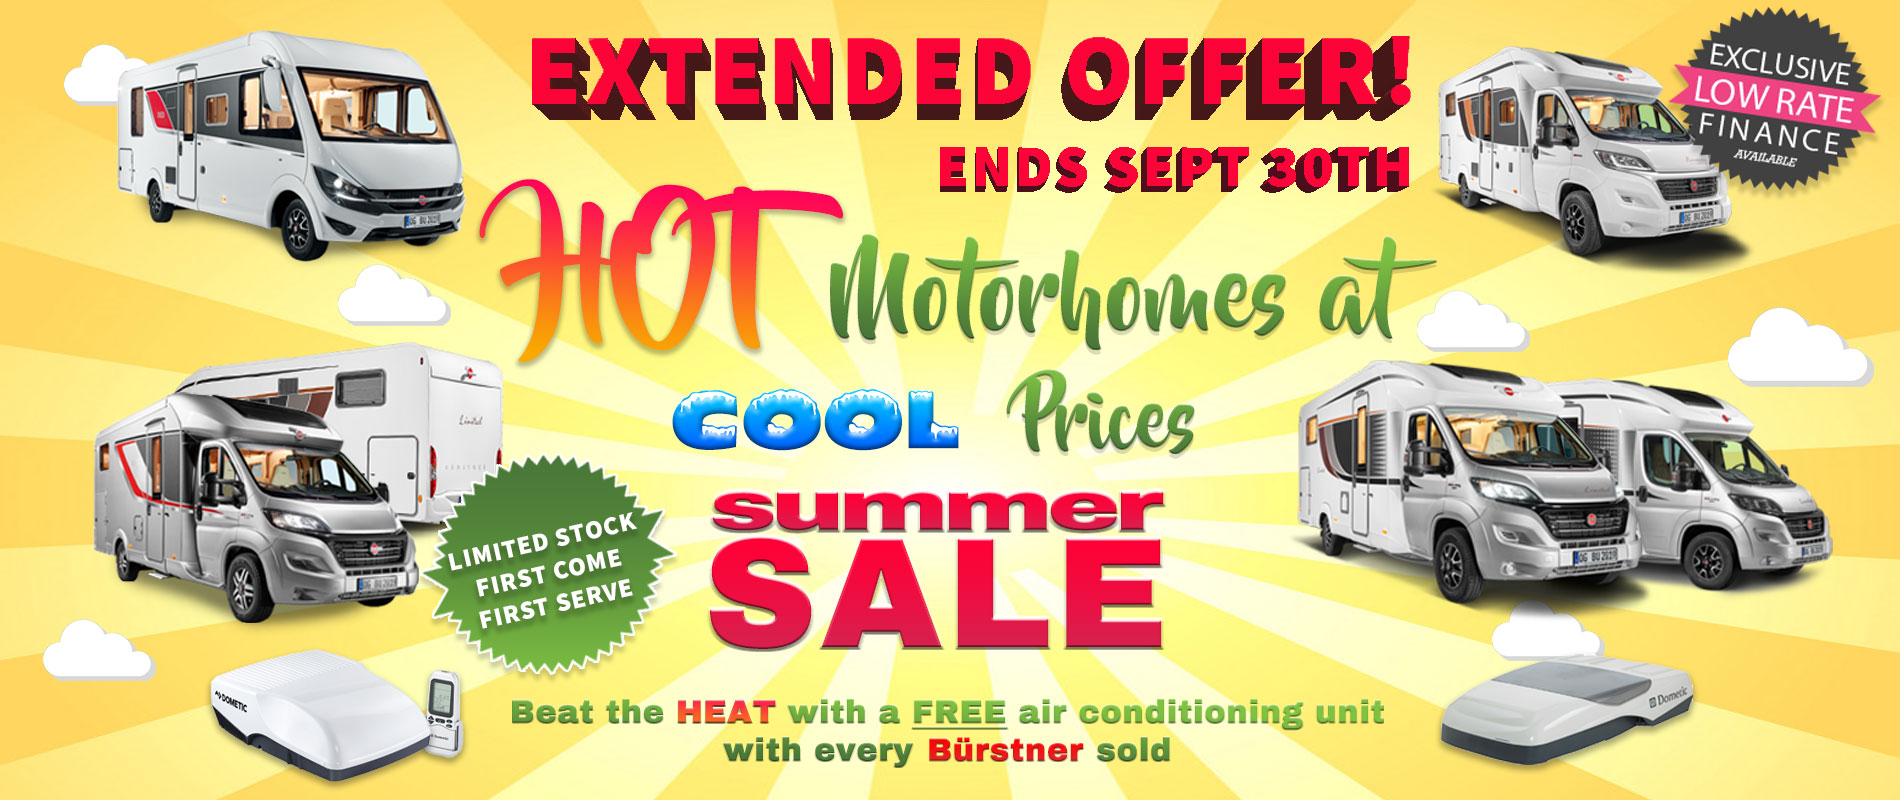 Burstner Summer Sale - Extended Offer